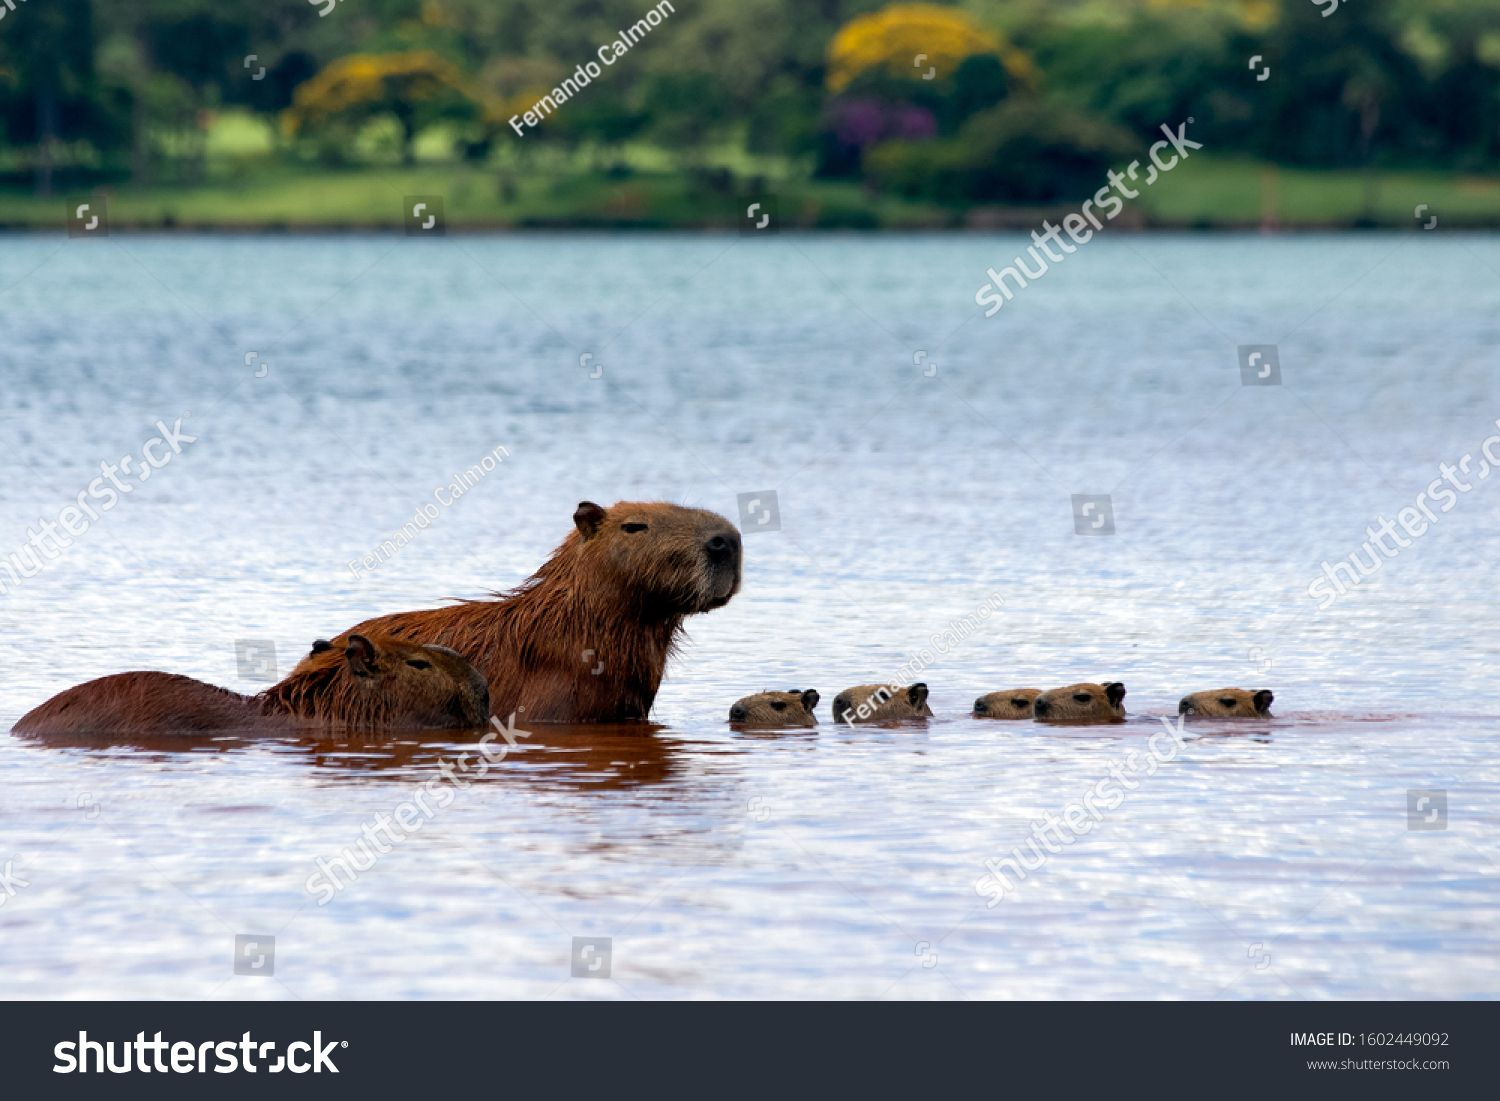 Five capybaras chicks and their parents sunbathing inside Lake Parano¨¢ in Brasilia, Brazil. The capybara is the largest rodent in the world. Species Hydrochoerus hydrochaeris. Animal life. Cerrado #Ad , #Affiliate, #Brasilia#Parano#capybara#Brazil